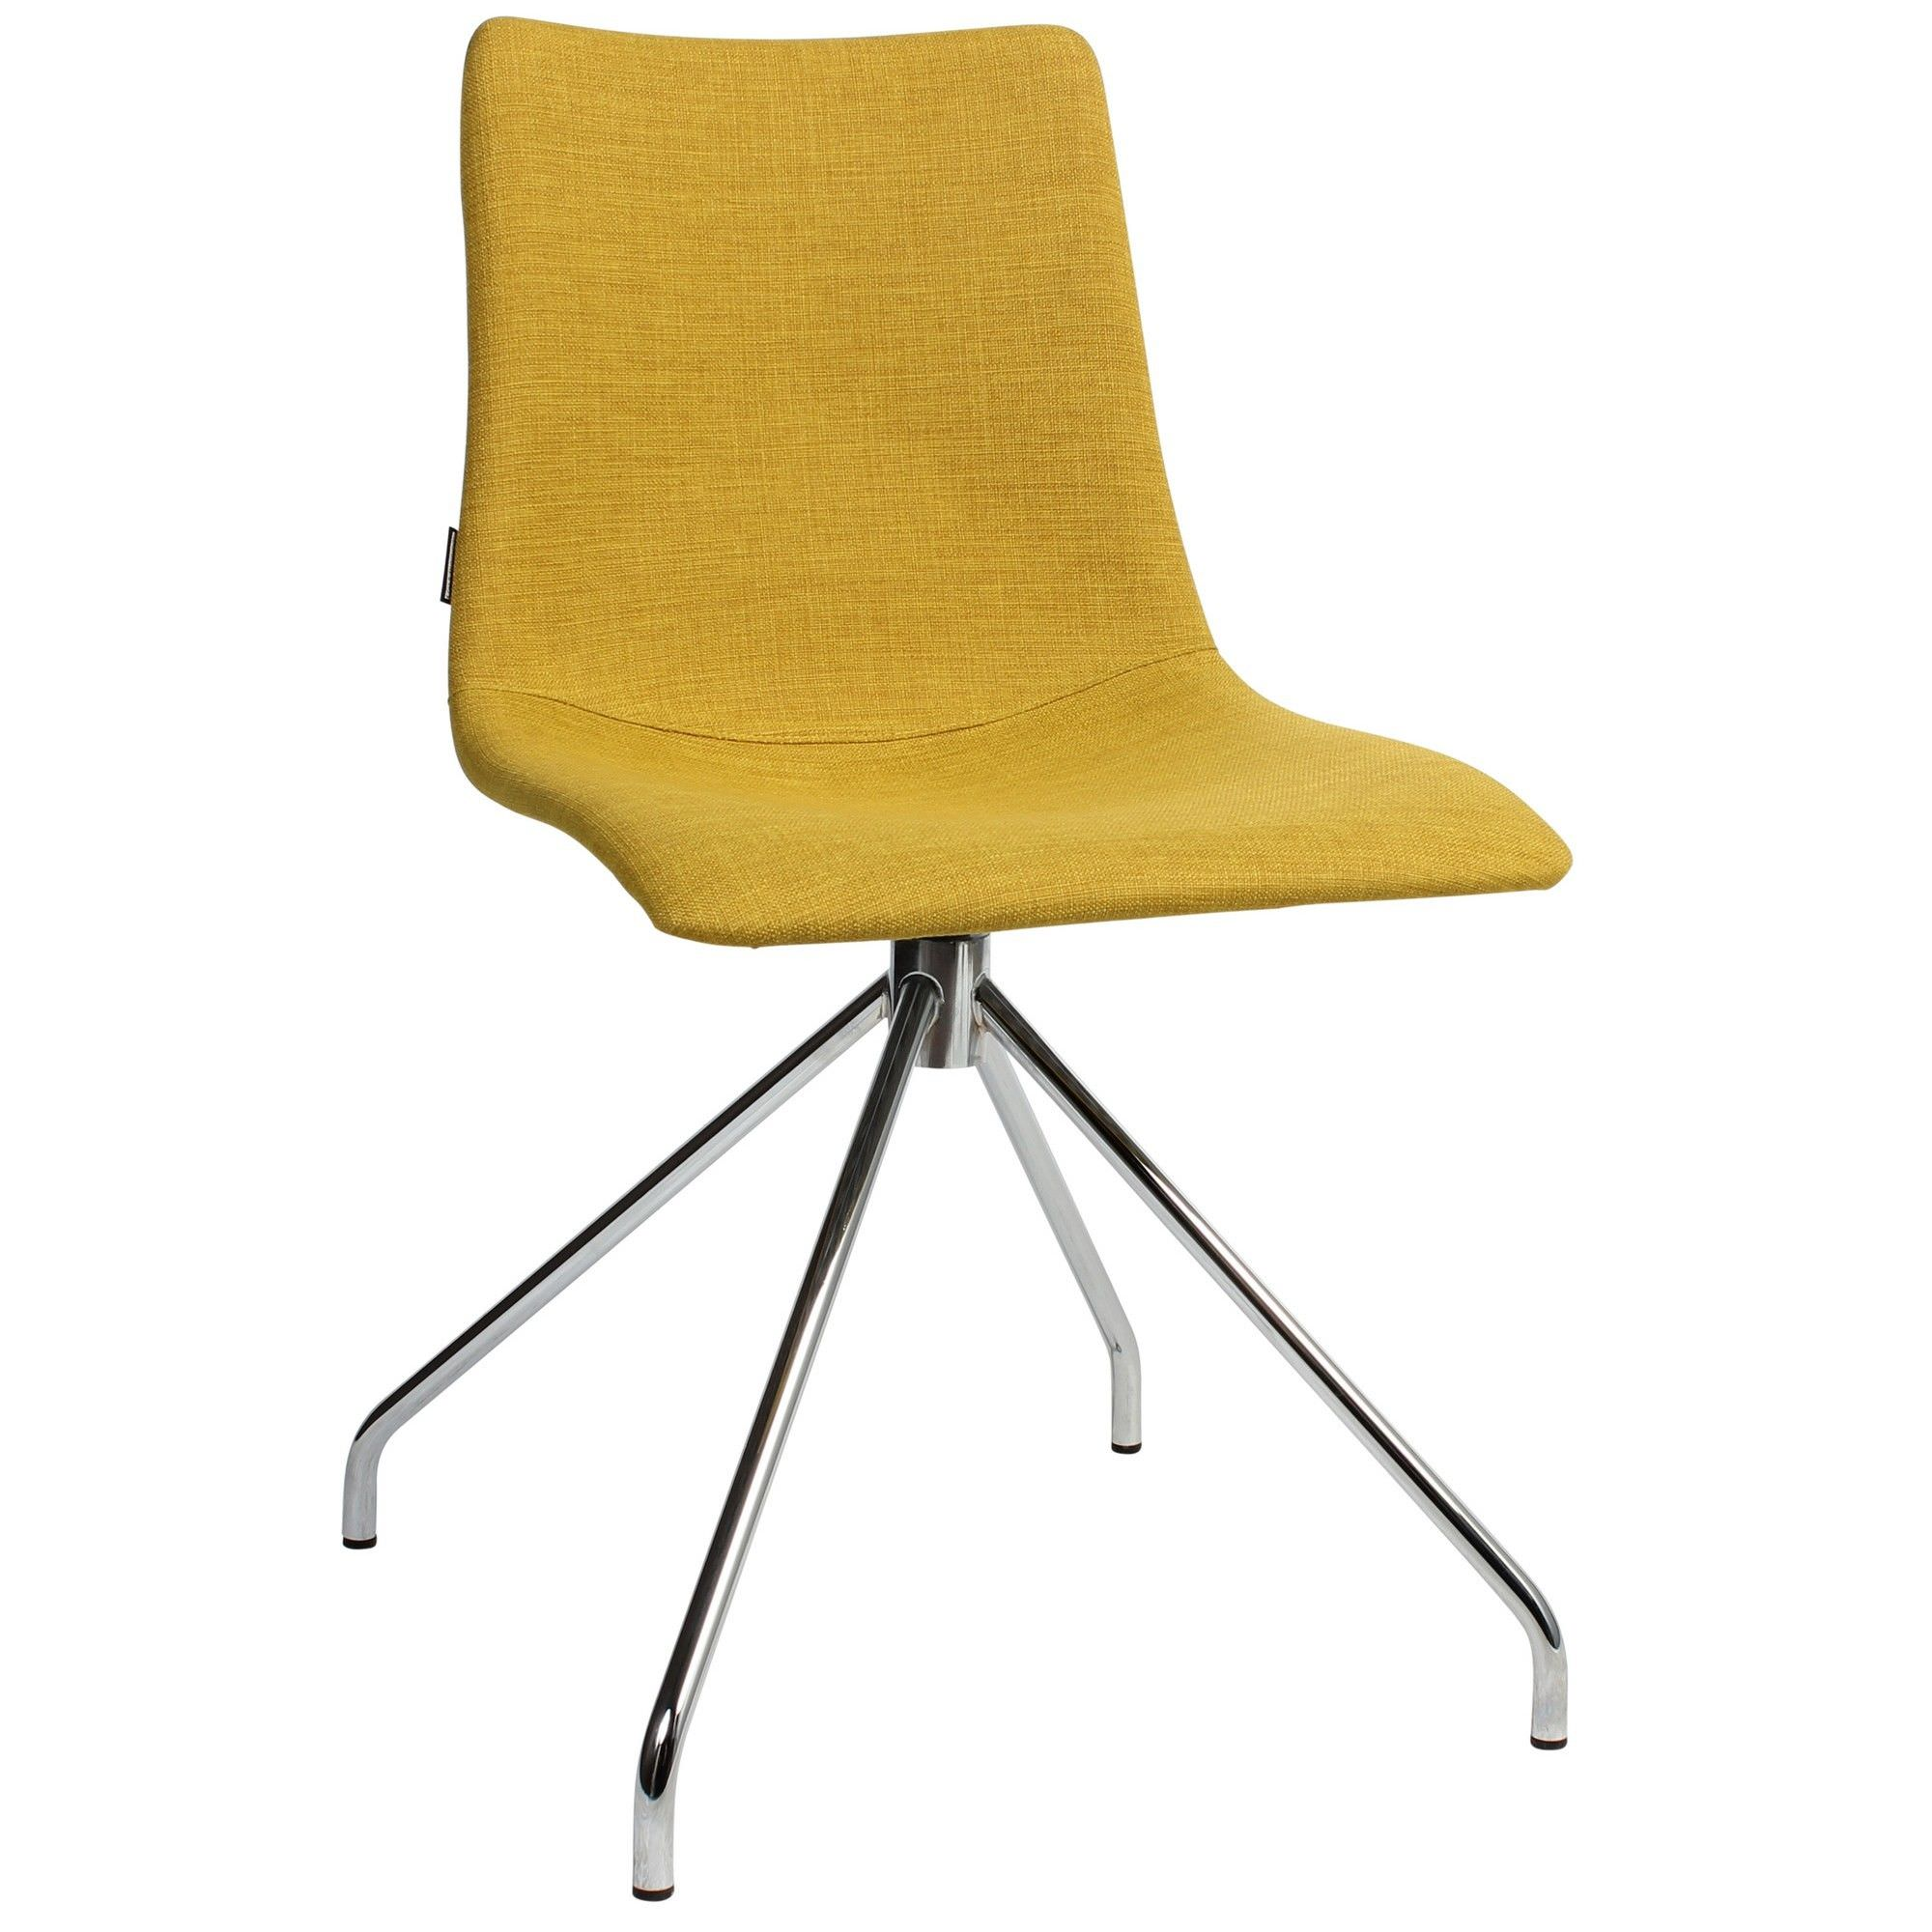 Zebra Pop Italian Made Commercial Grade Fabric Dining Chair, Trestle Leg, Saffron / Chrome